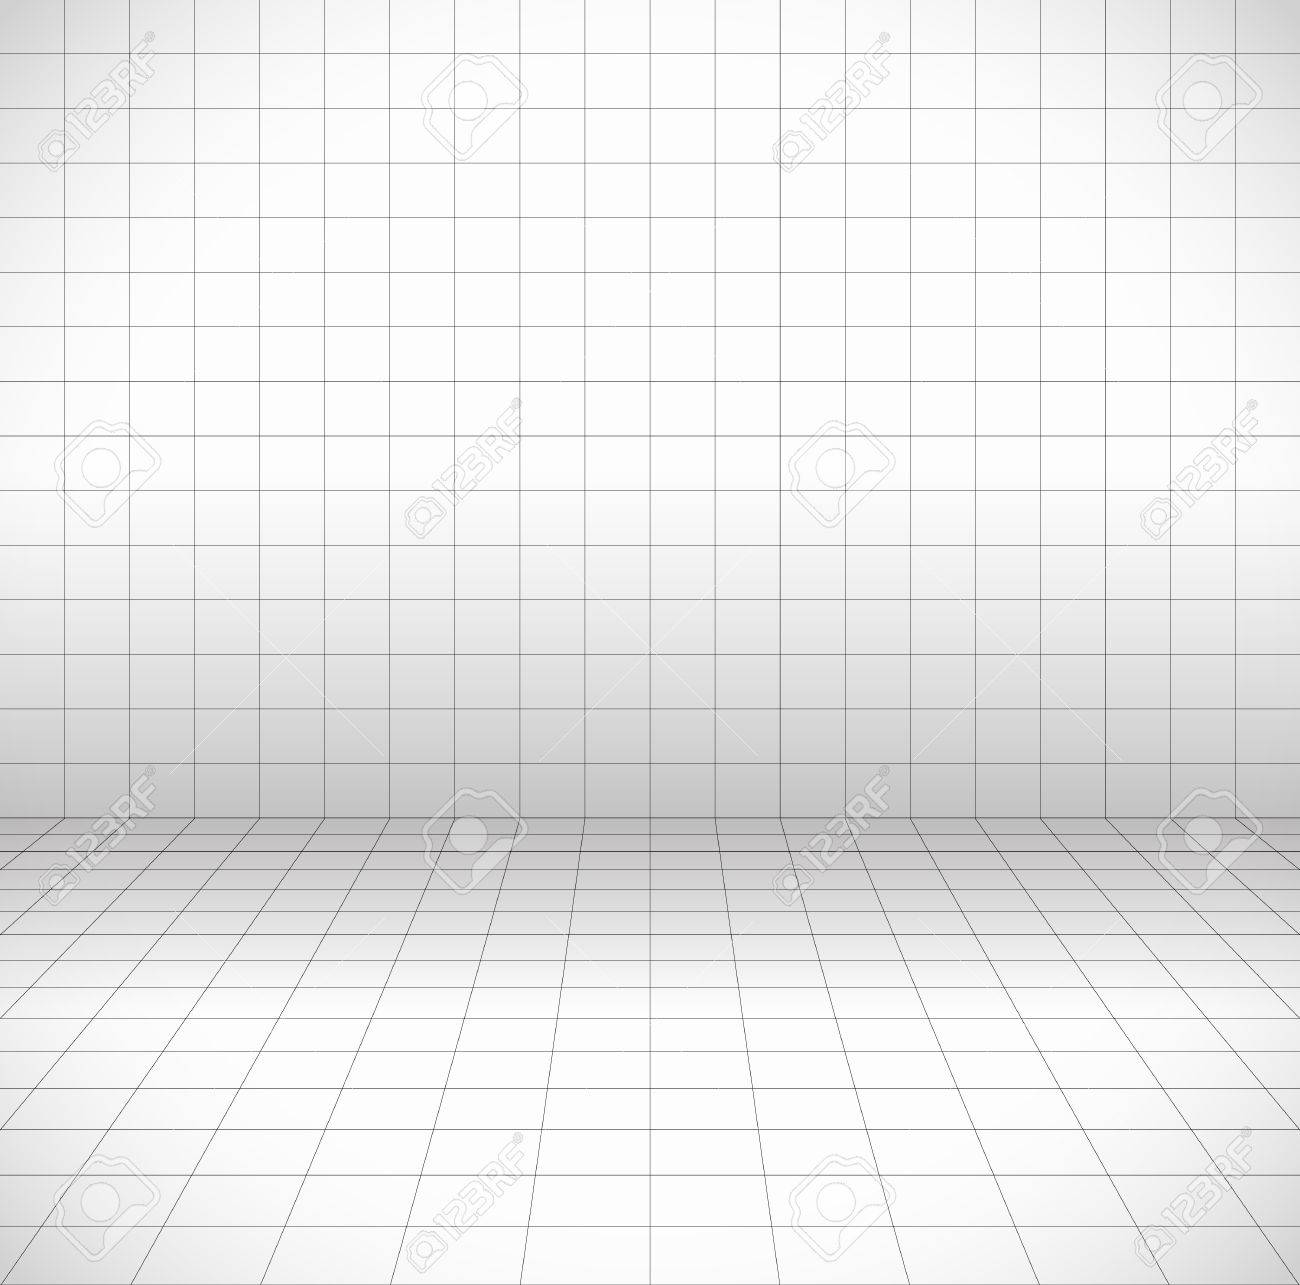 worksheet Blank Grid blank space with perspective grid wire frame stock photo 39516249